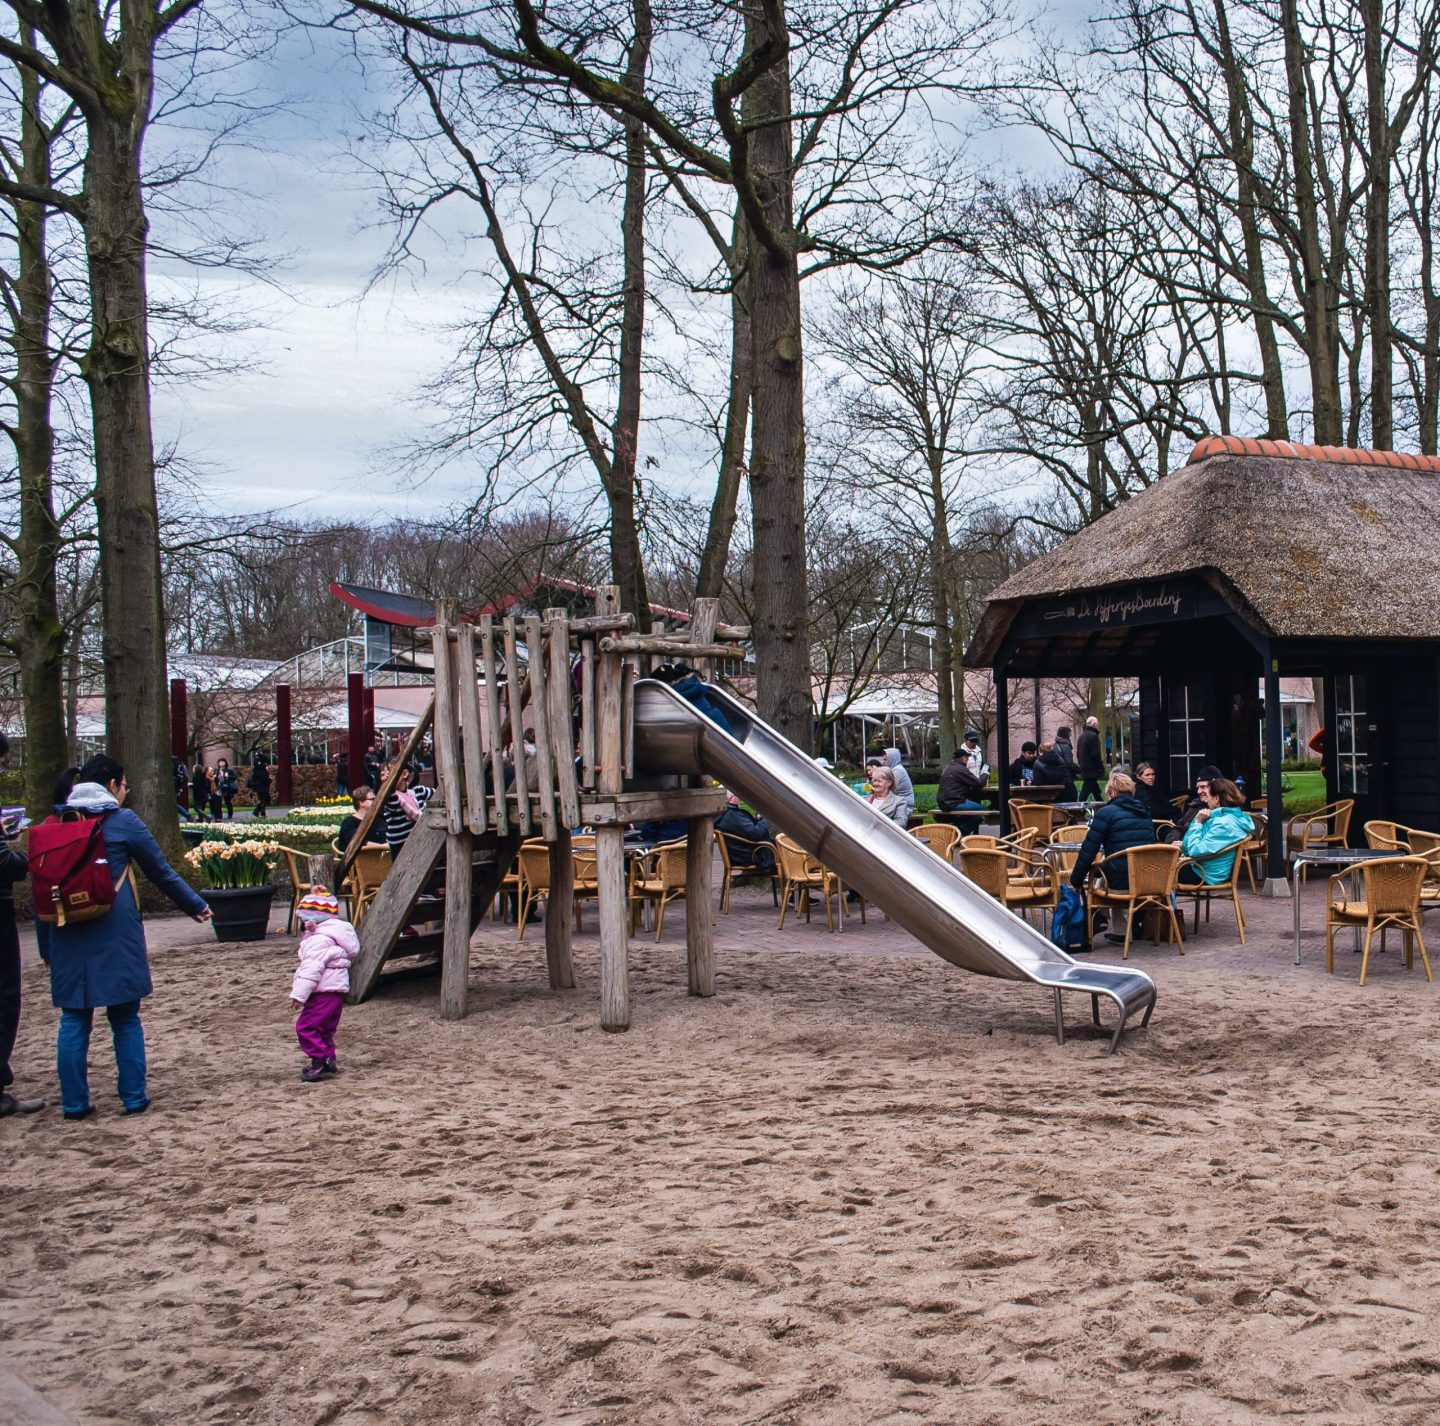 Playground plus coffee hut at Keukenhof. Other botanical gardens, take note!